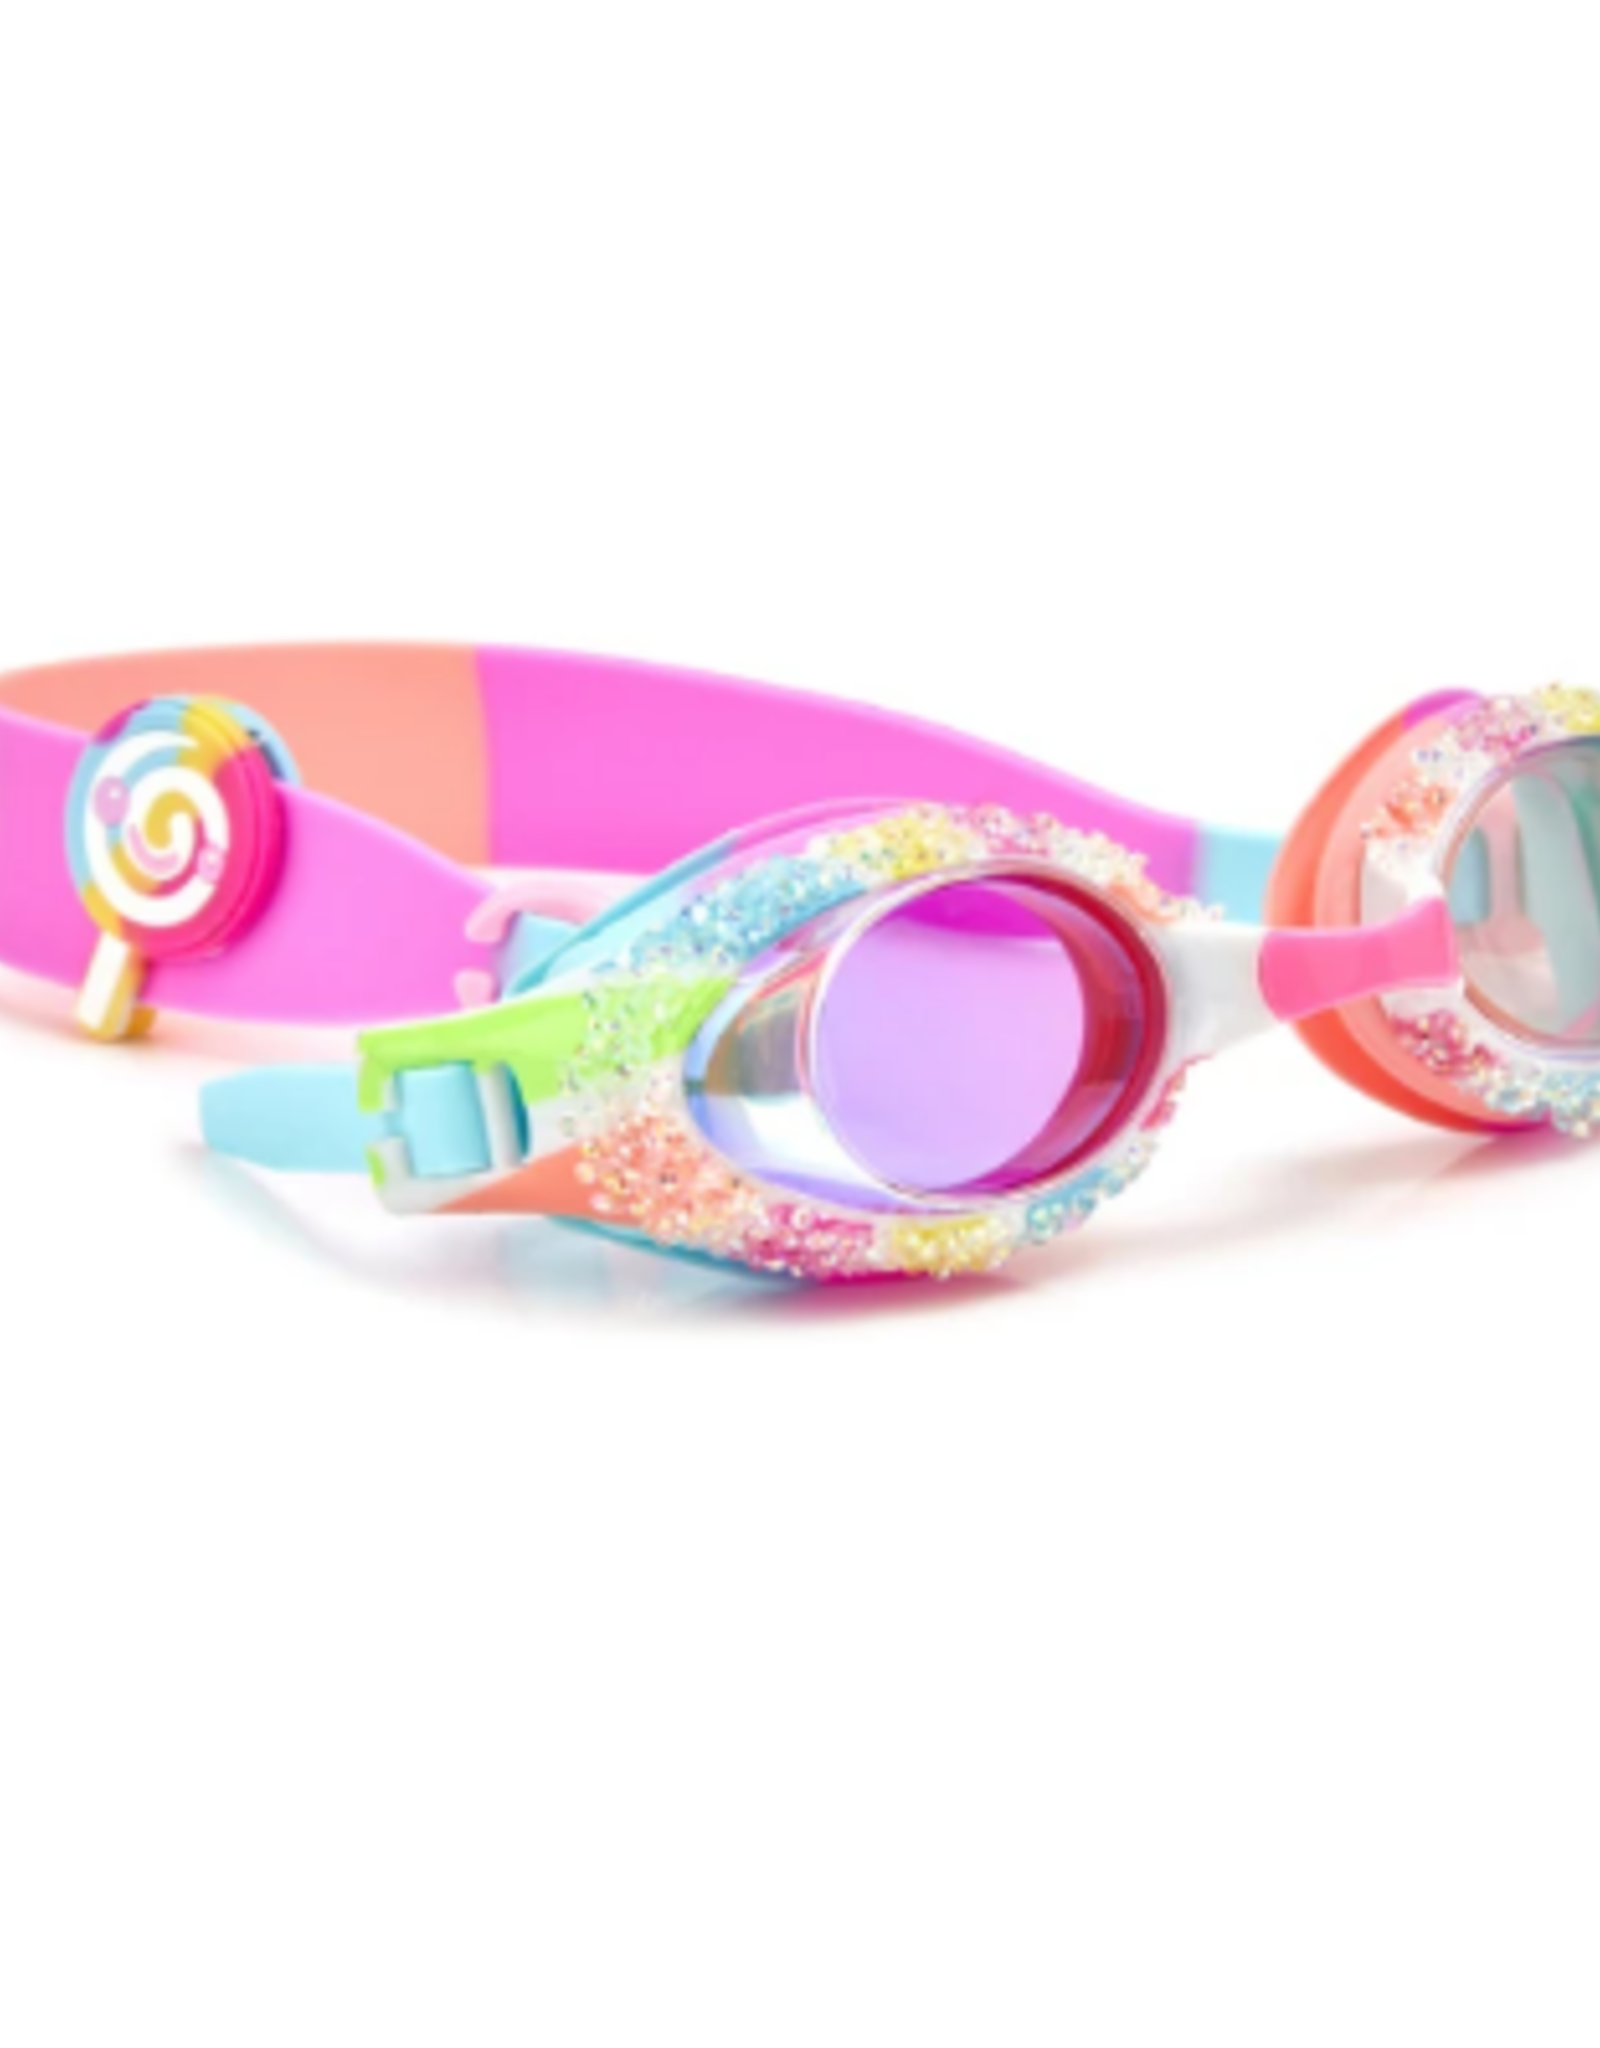 Bling2O Pixie Goggles